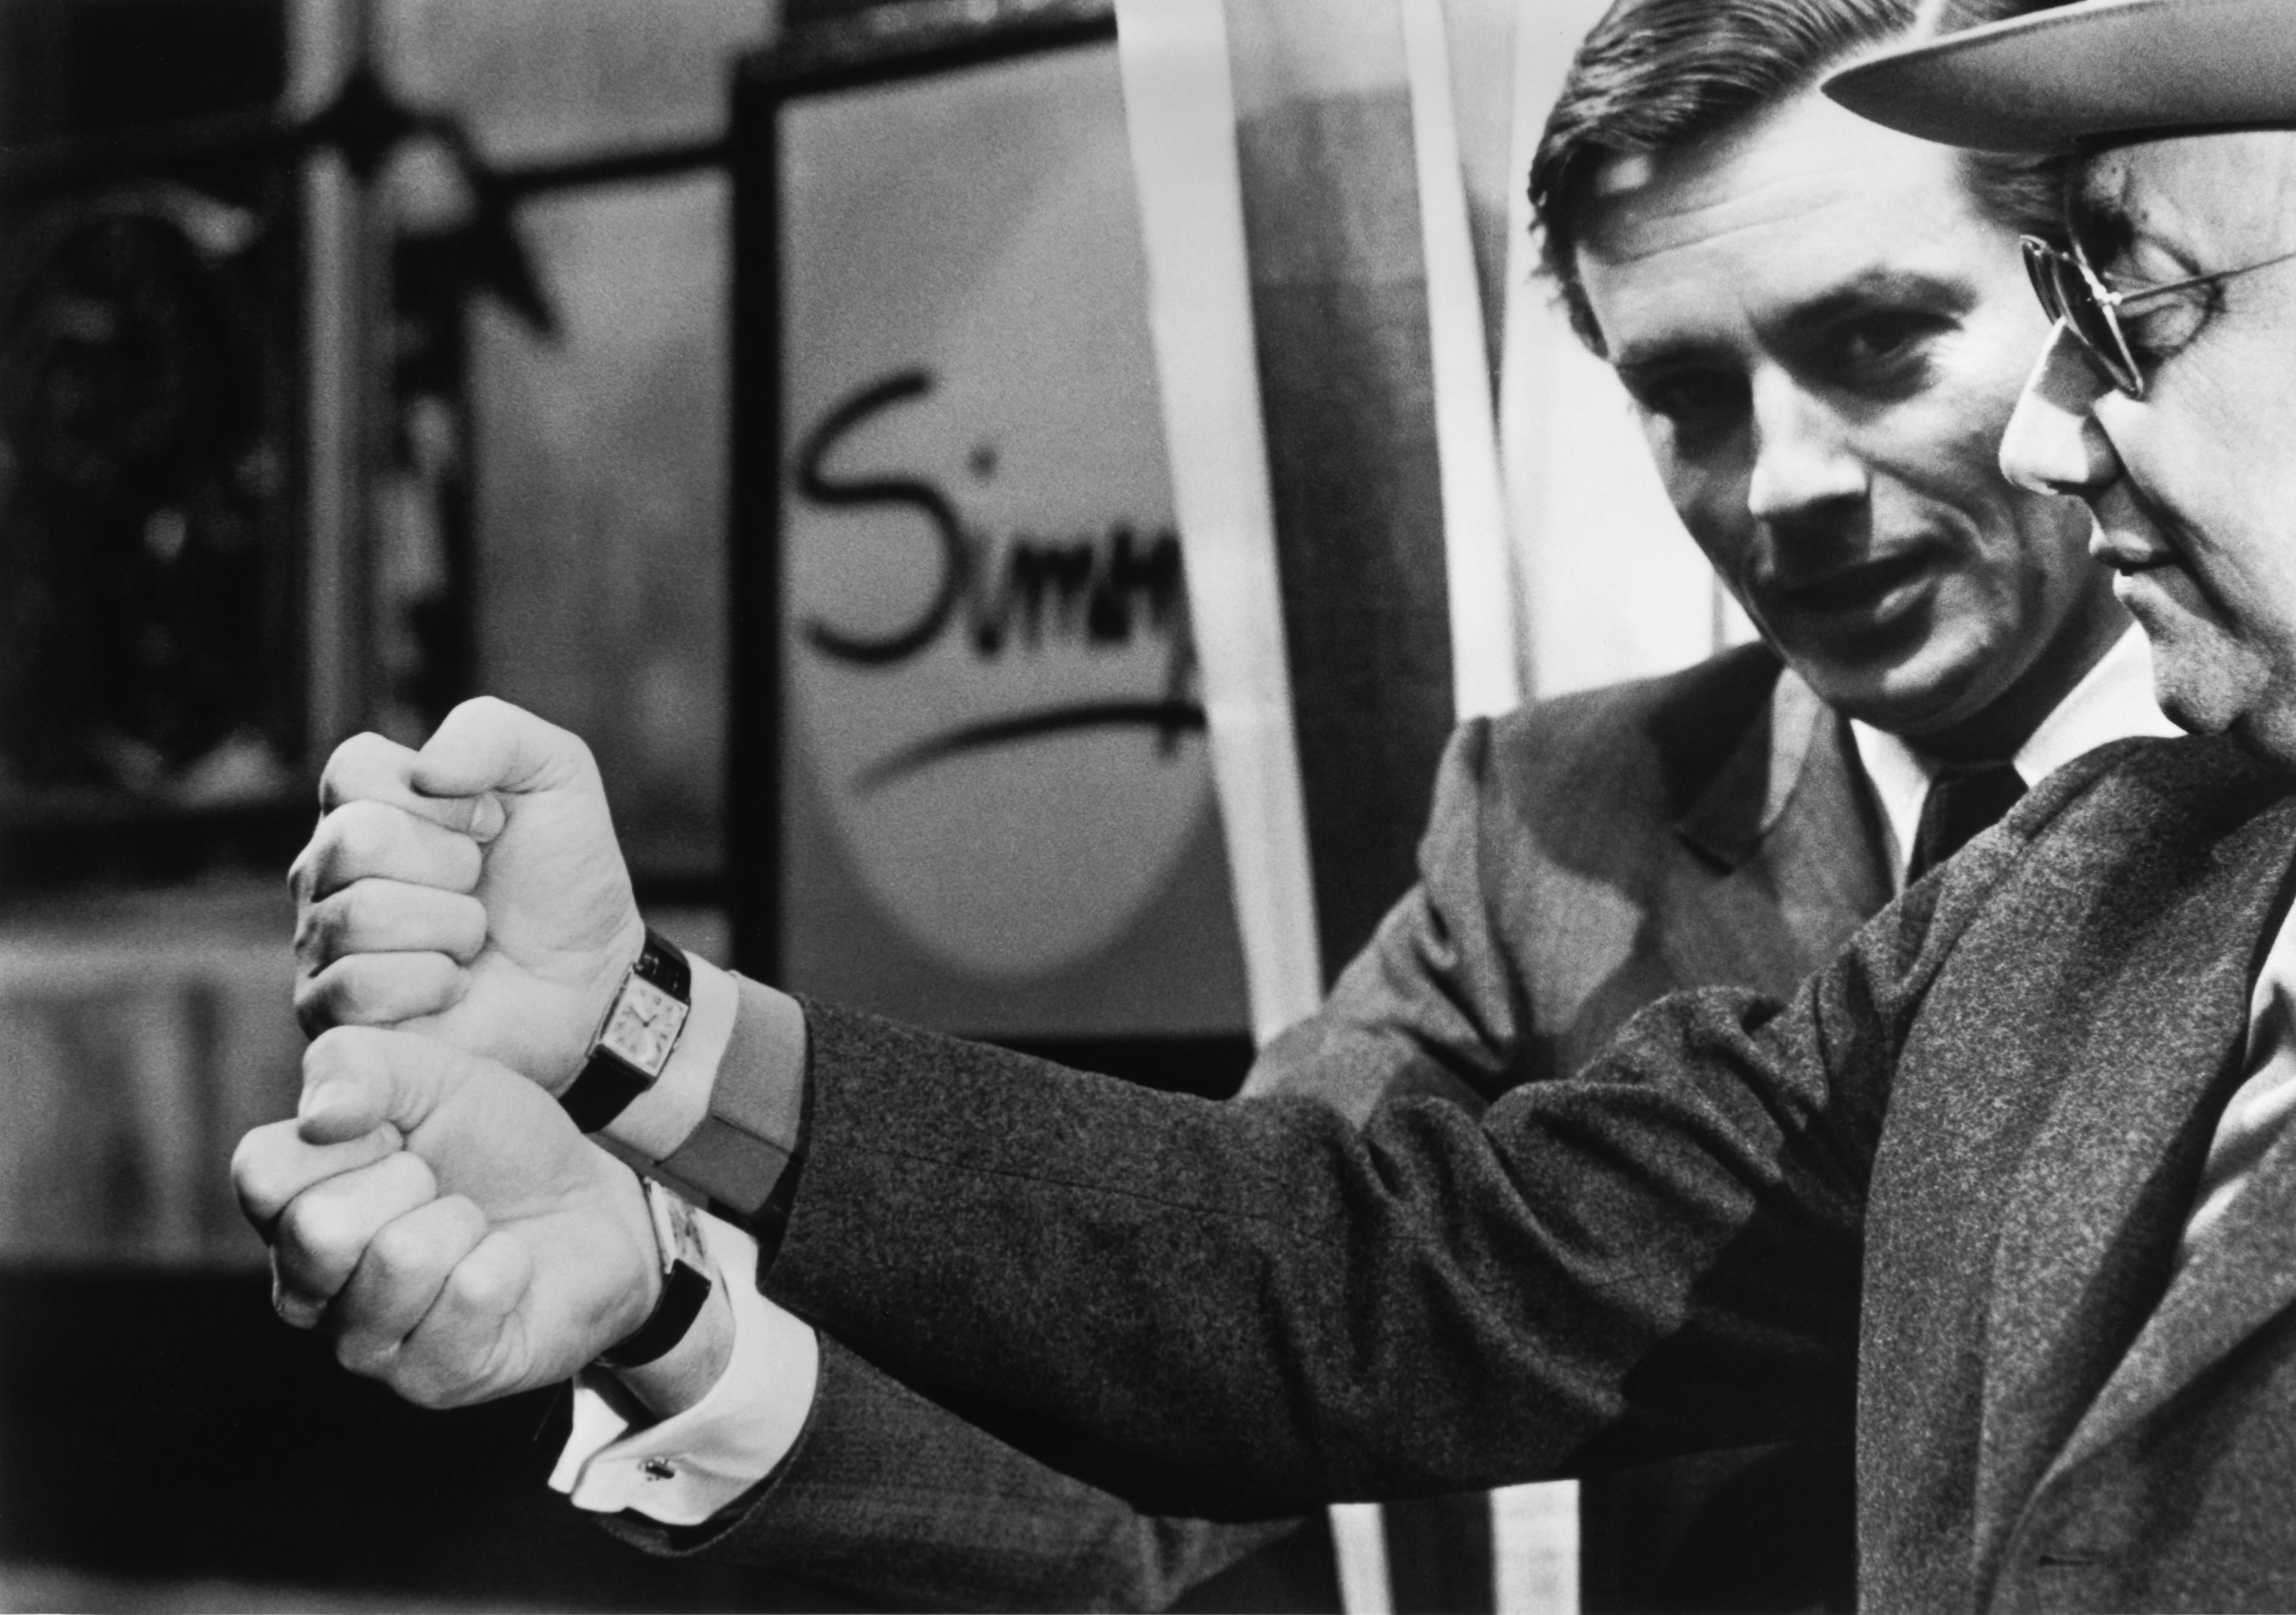 On the set of the film _Un Flic,_ Alain Delon notes that his favorite watch, the Tank Arrondie, is also the one worn by the director he most enjoyed working with, Jean-Pierre Melville